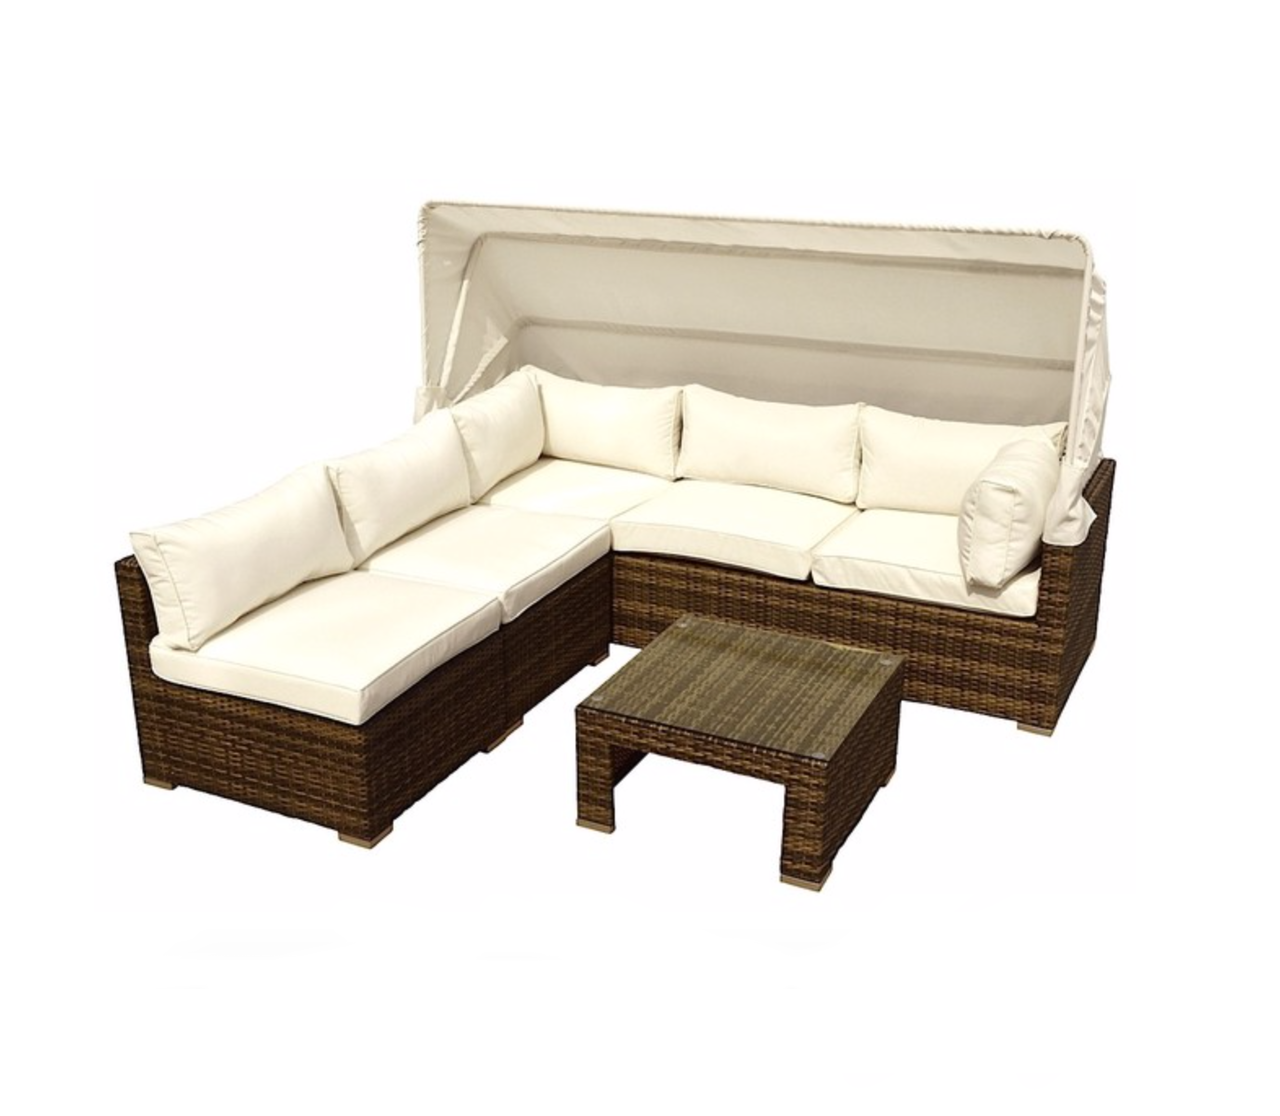 4pc Outdoor Sectional Set I Shop Now I Free Shipping